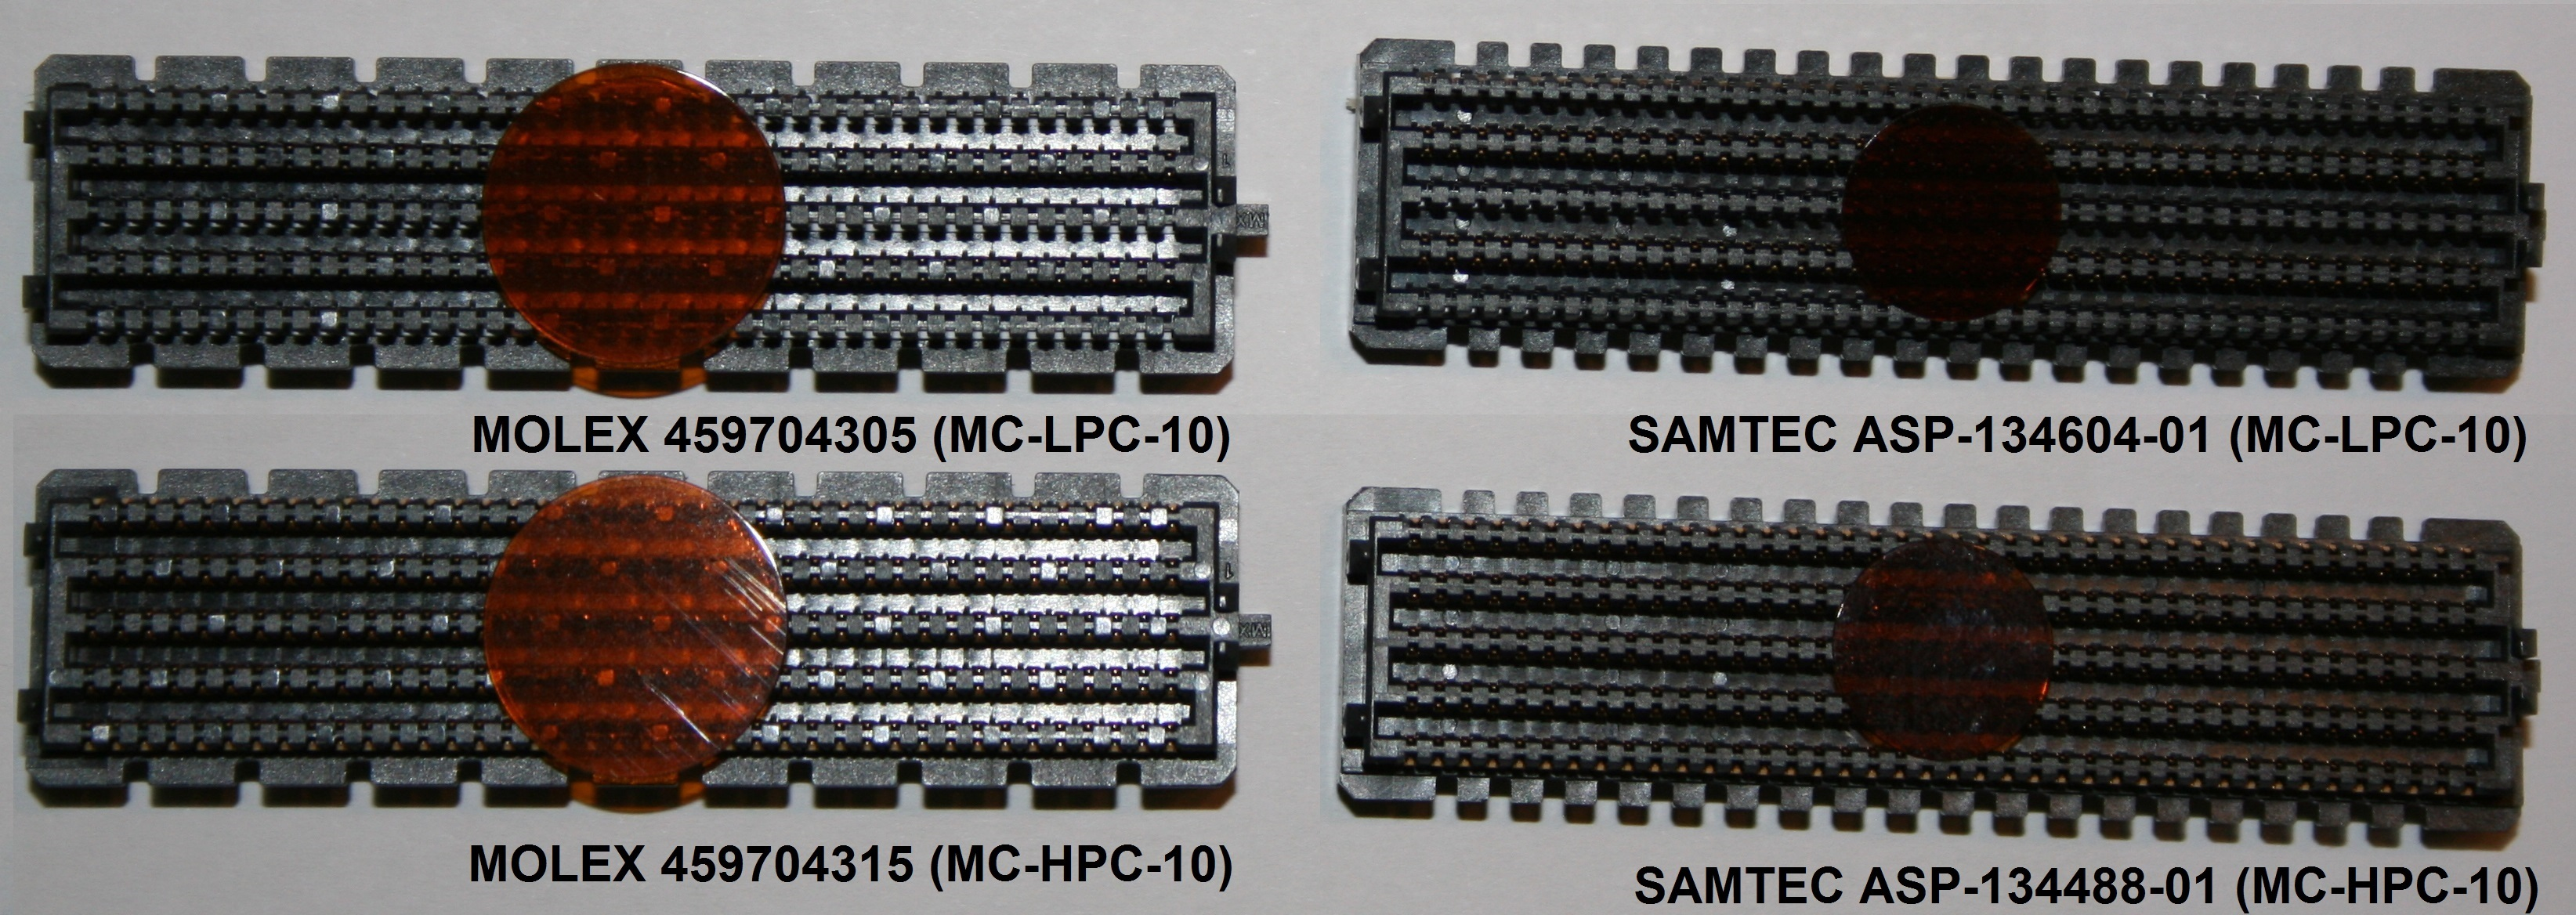 Molex and Samtec FMC connectors